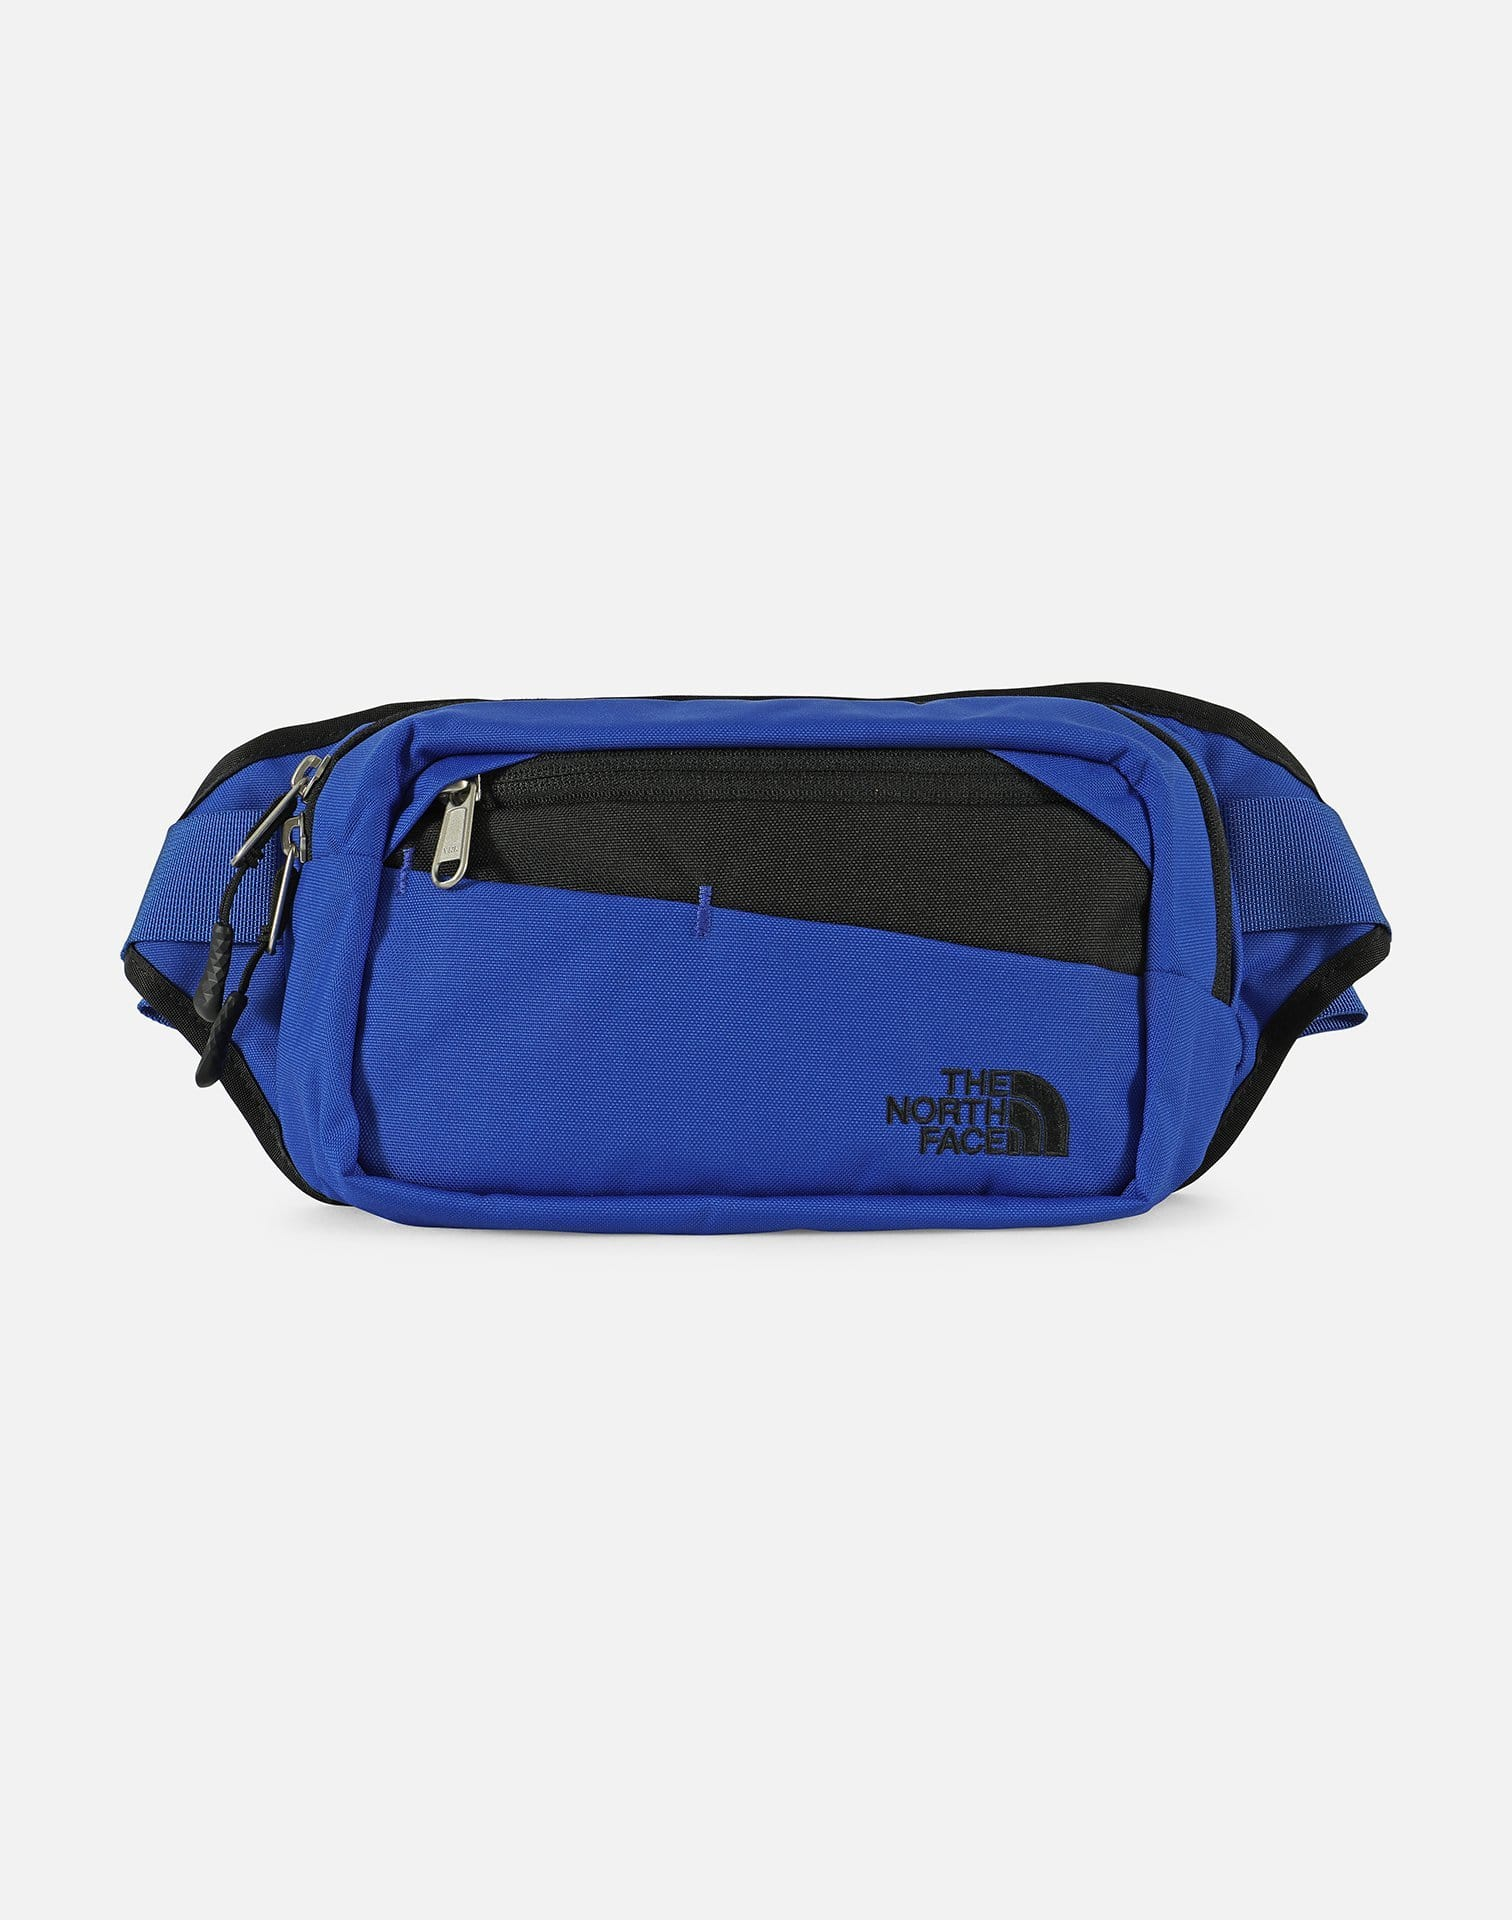 The North Face Boxer Hip Pack